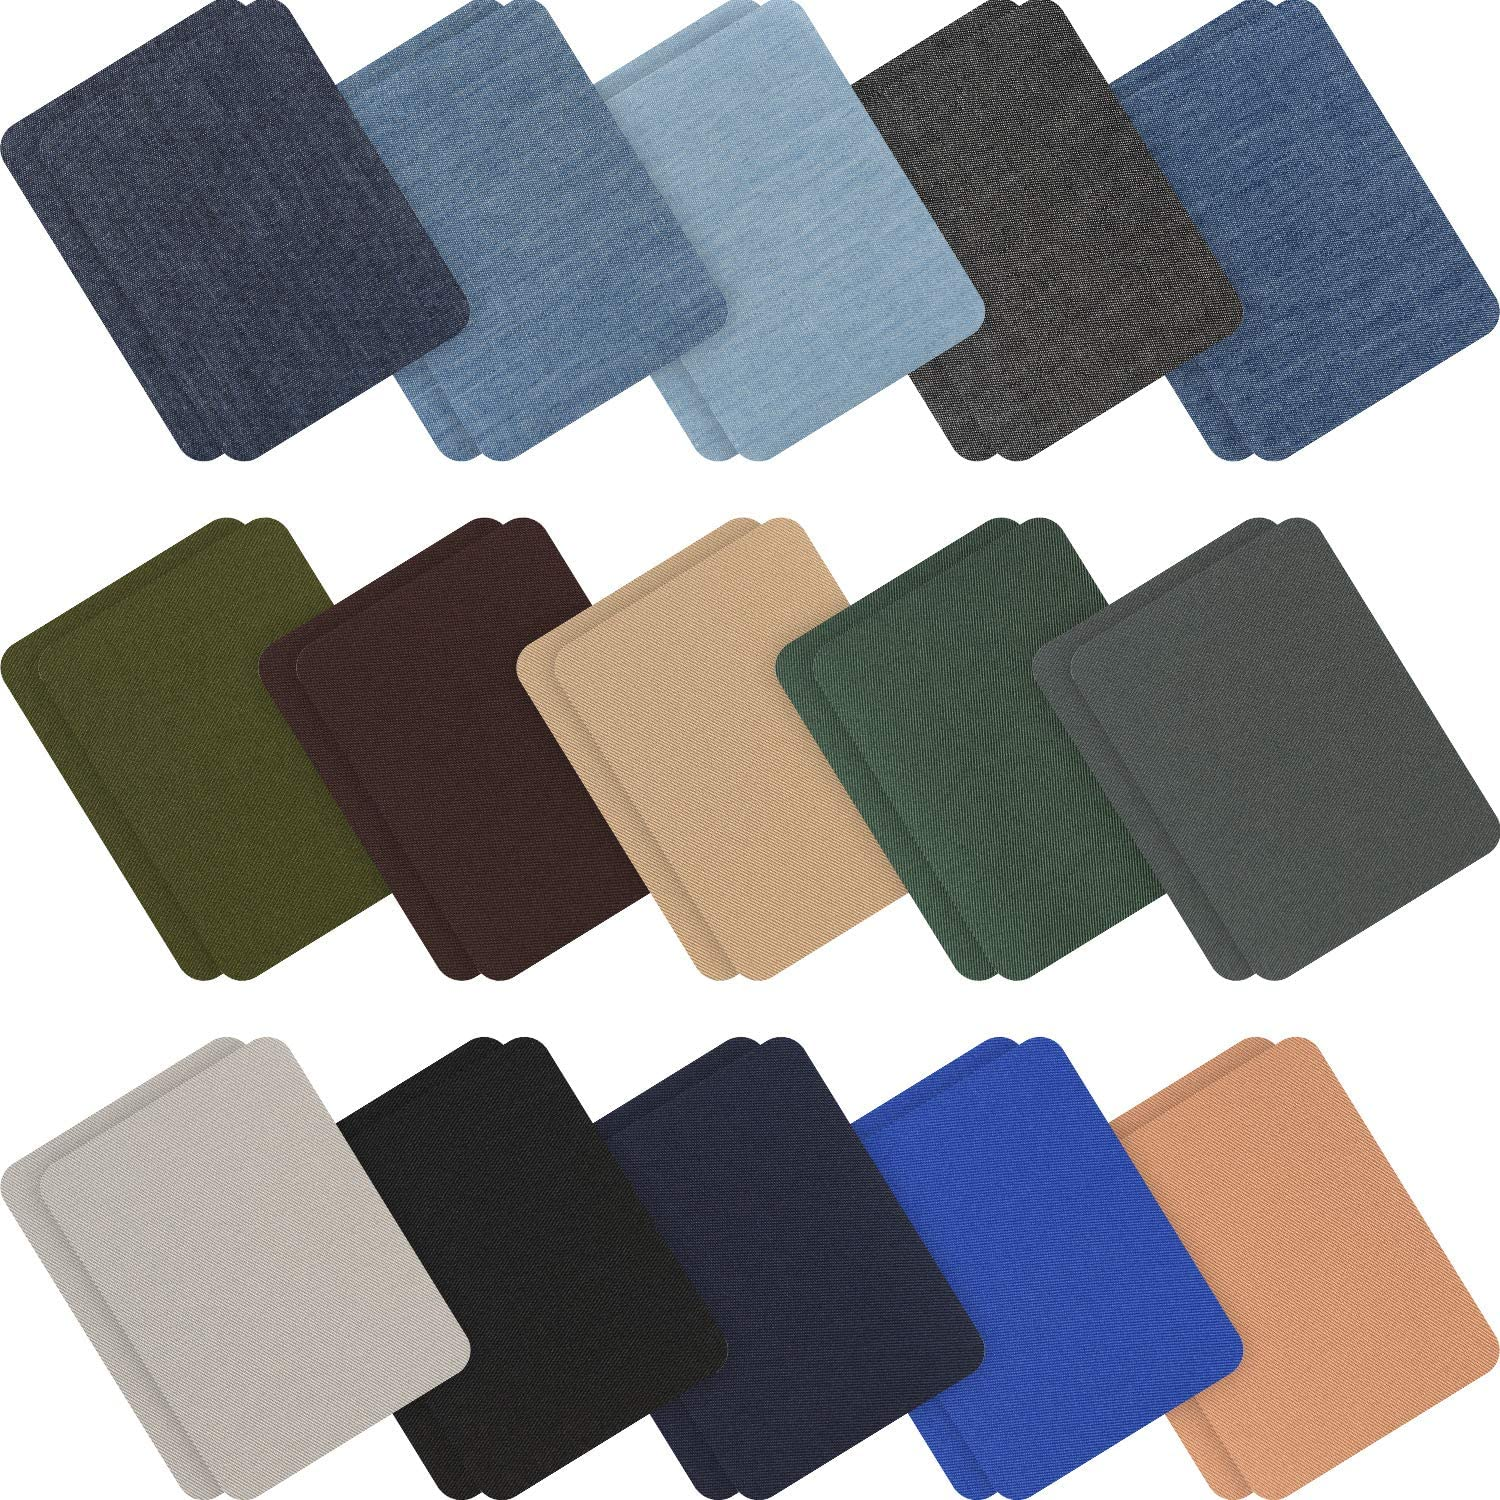 Repair Patches for Jeans DIY Elbow Knee Repair Patches Colorful Kit for Kids Adult Greensen 18pcs Iron on Patches for Clothing Repair